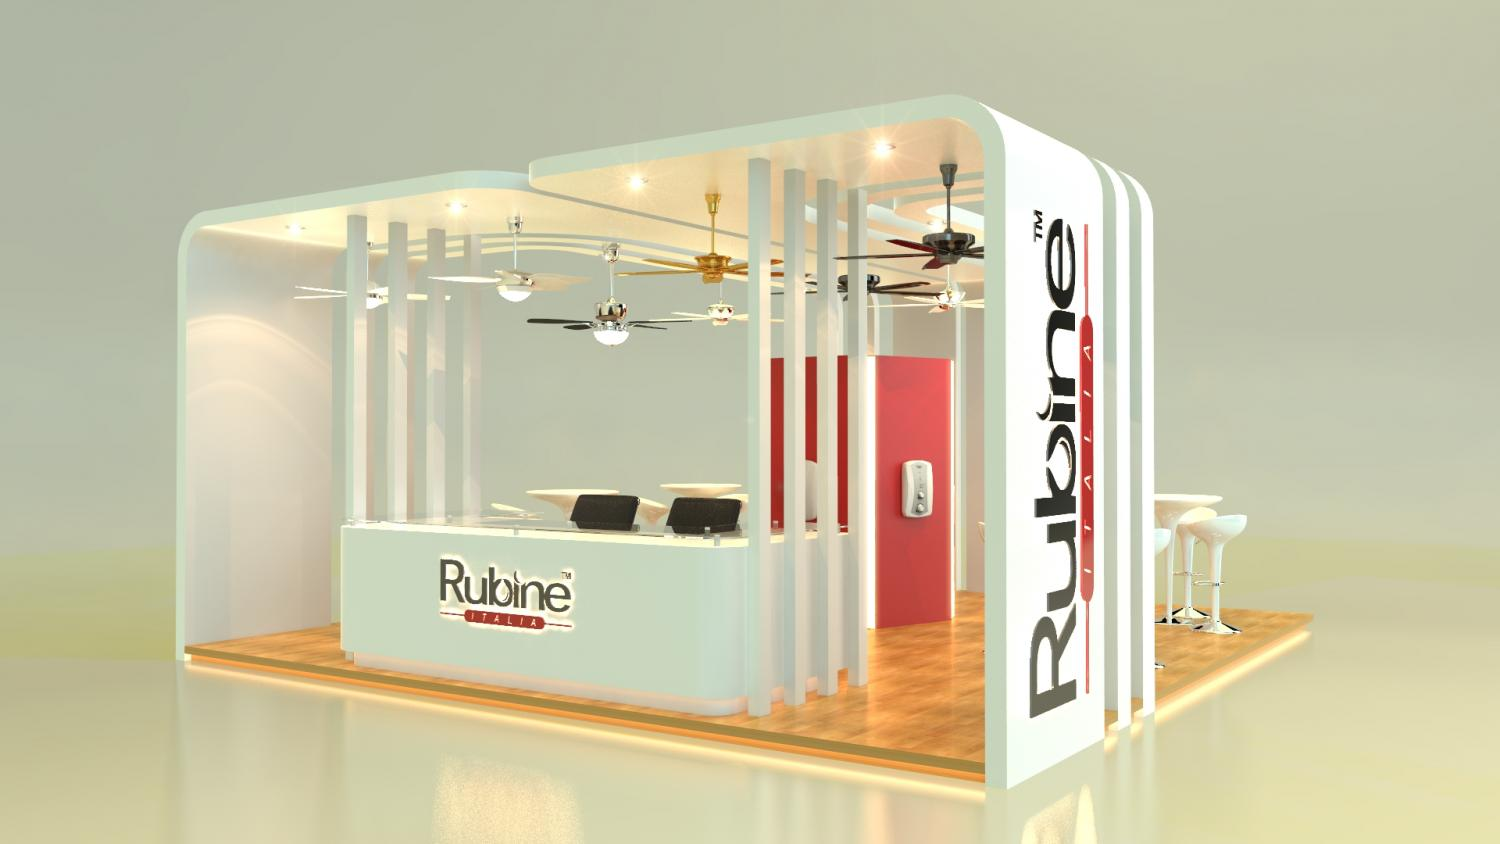 Property Exhibition Booth : Exhibition booth rental in malaysia backdrop display